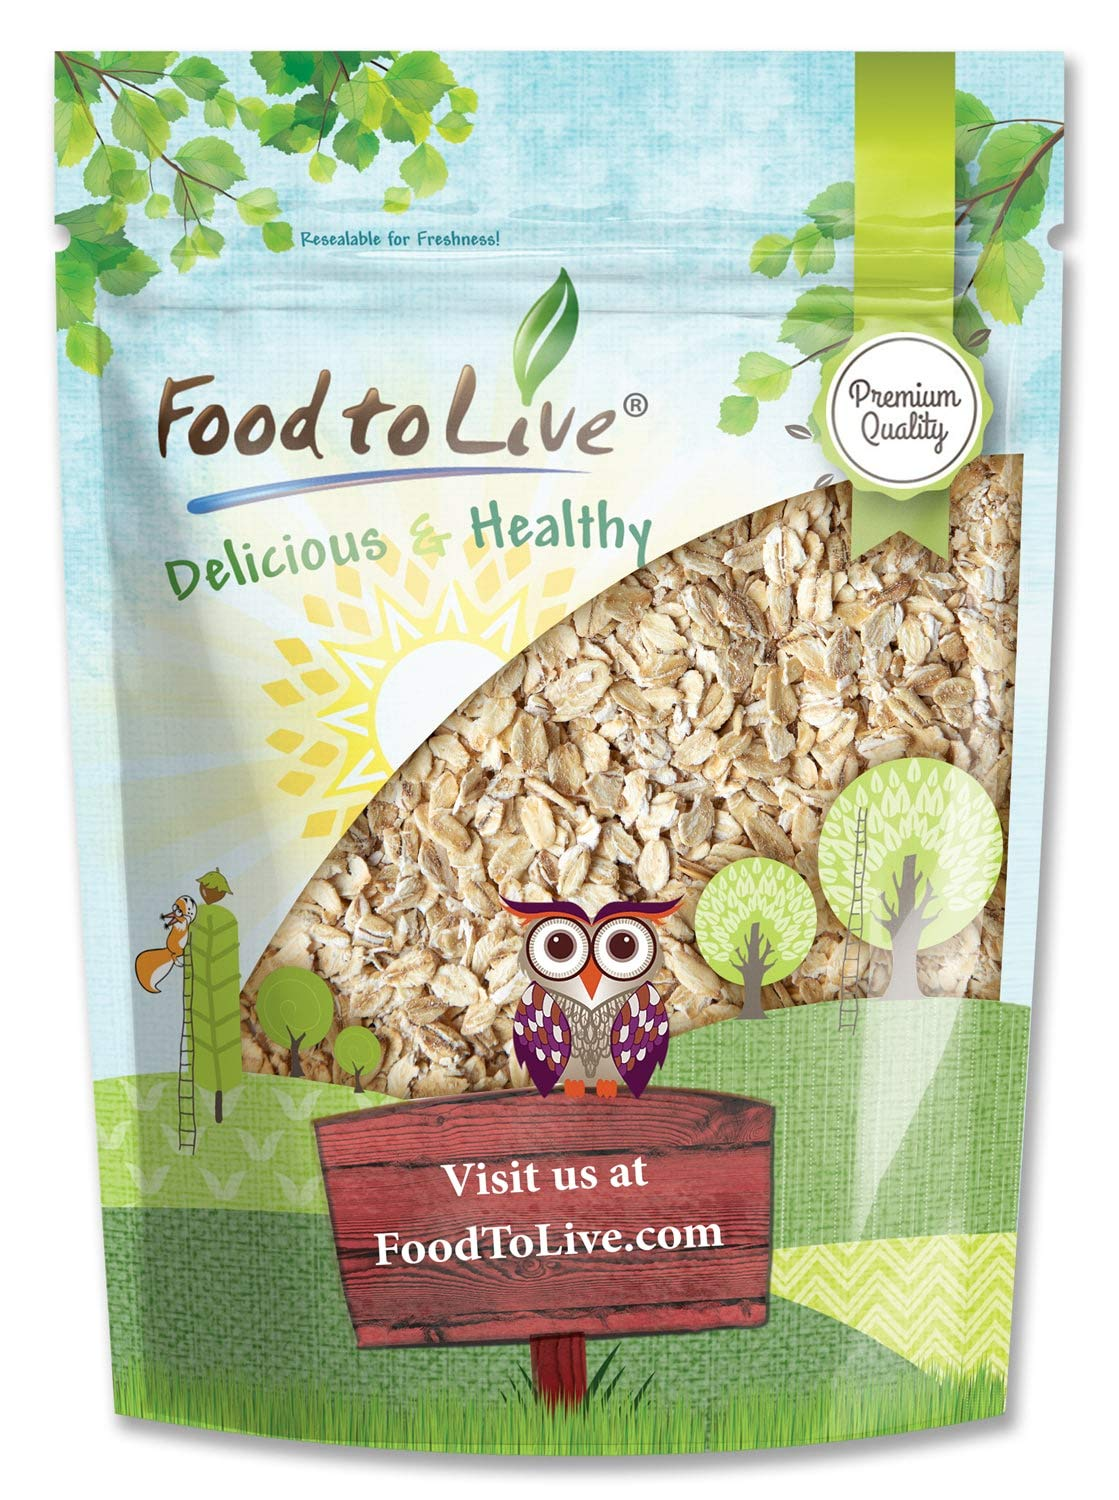 Quick Cooking Rolled Oats, 3 Pounds - 1 Minute Oatmeal, Whole Grain, Instant Meal, Dry Thin Flakes, Uncooked, Raw Whole Foods, Vegan, Kosher, Bulk.Great for Breakfast Cereal and Granola